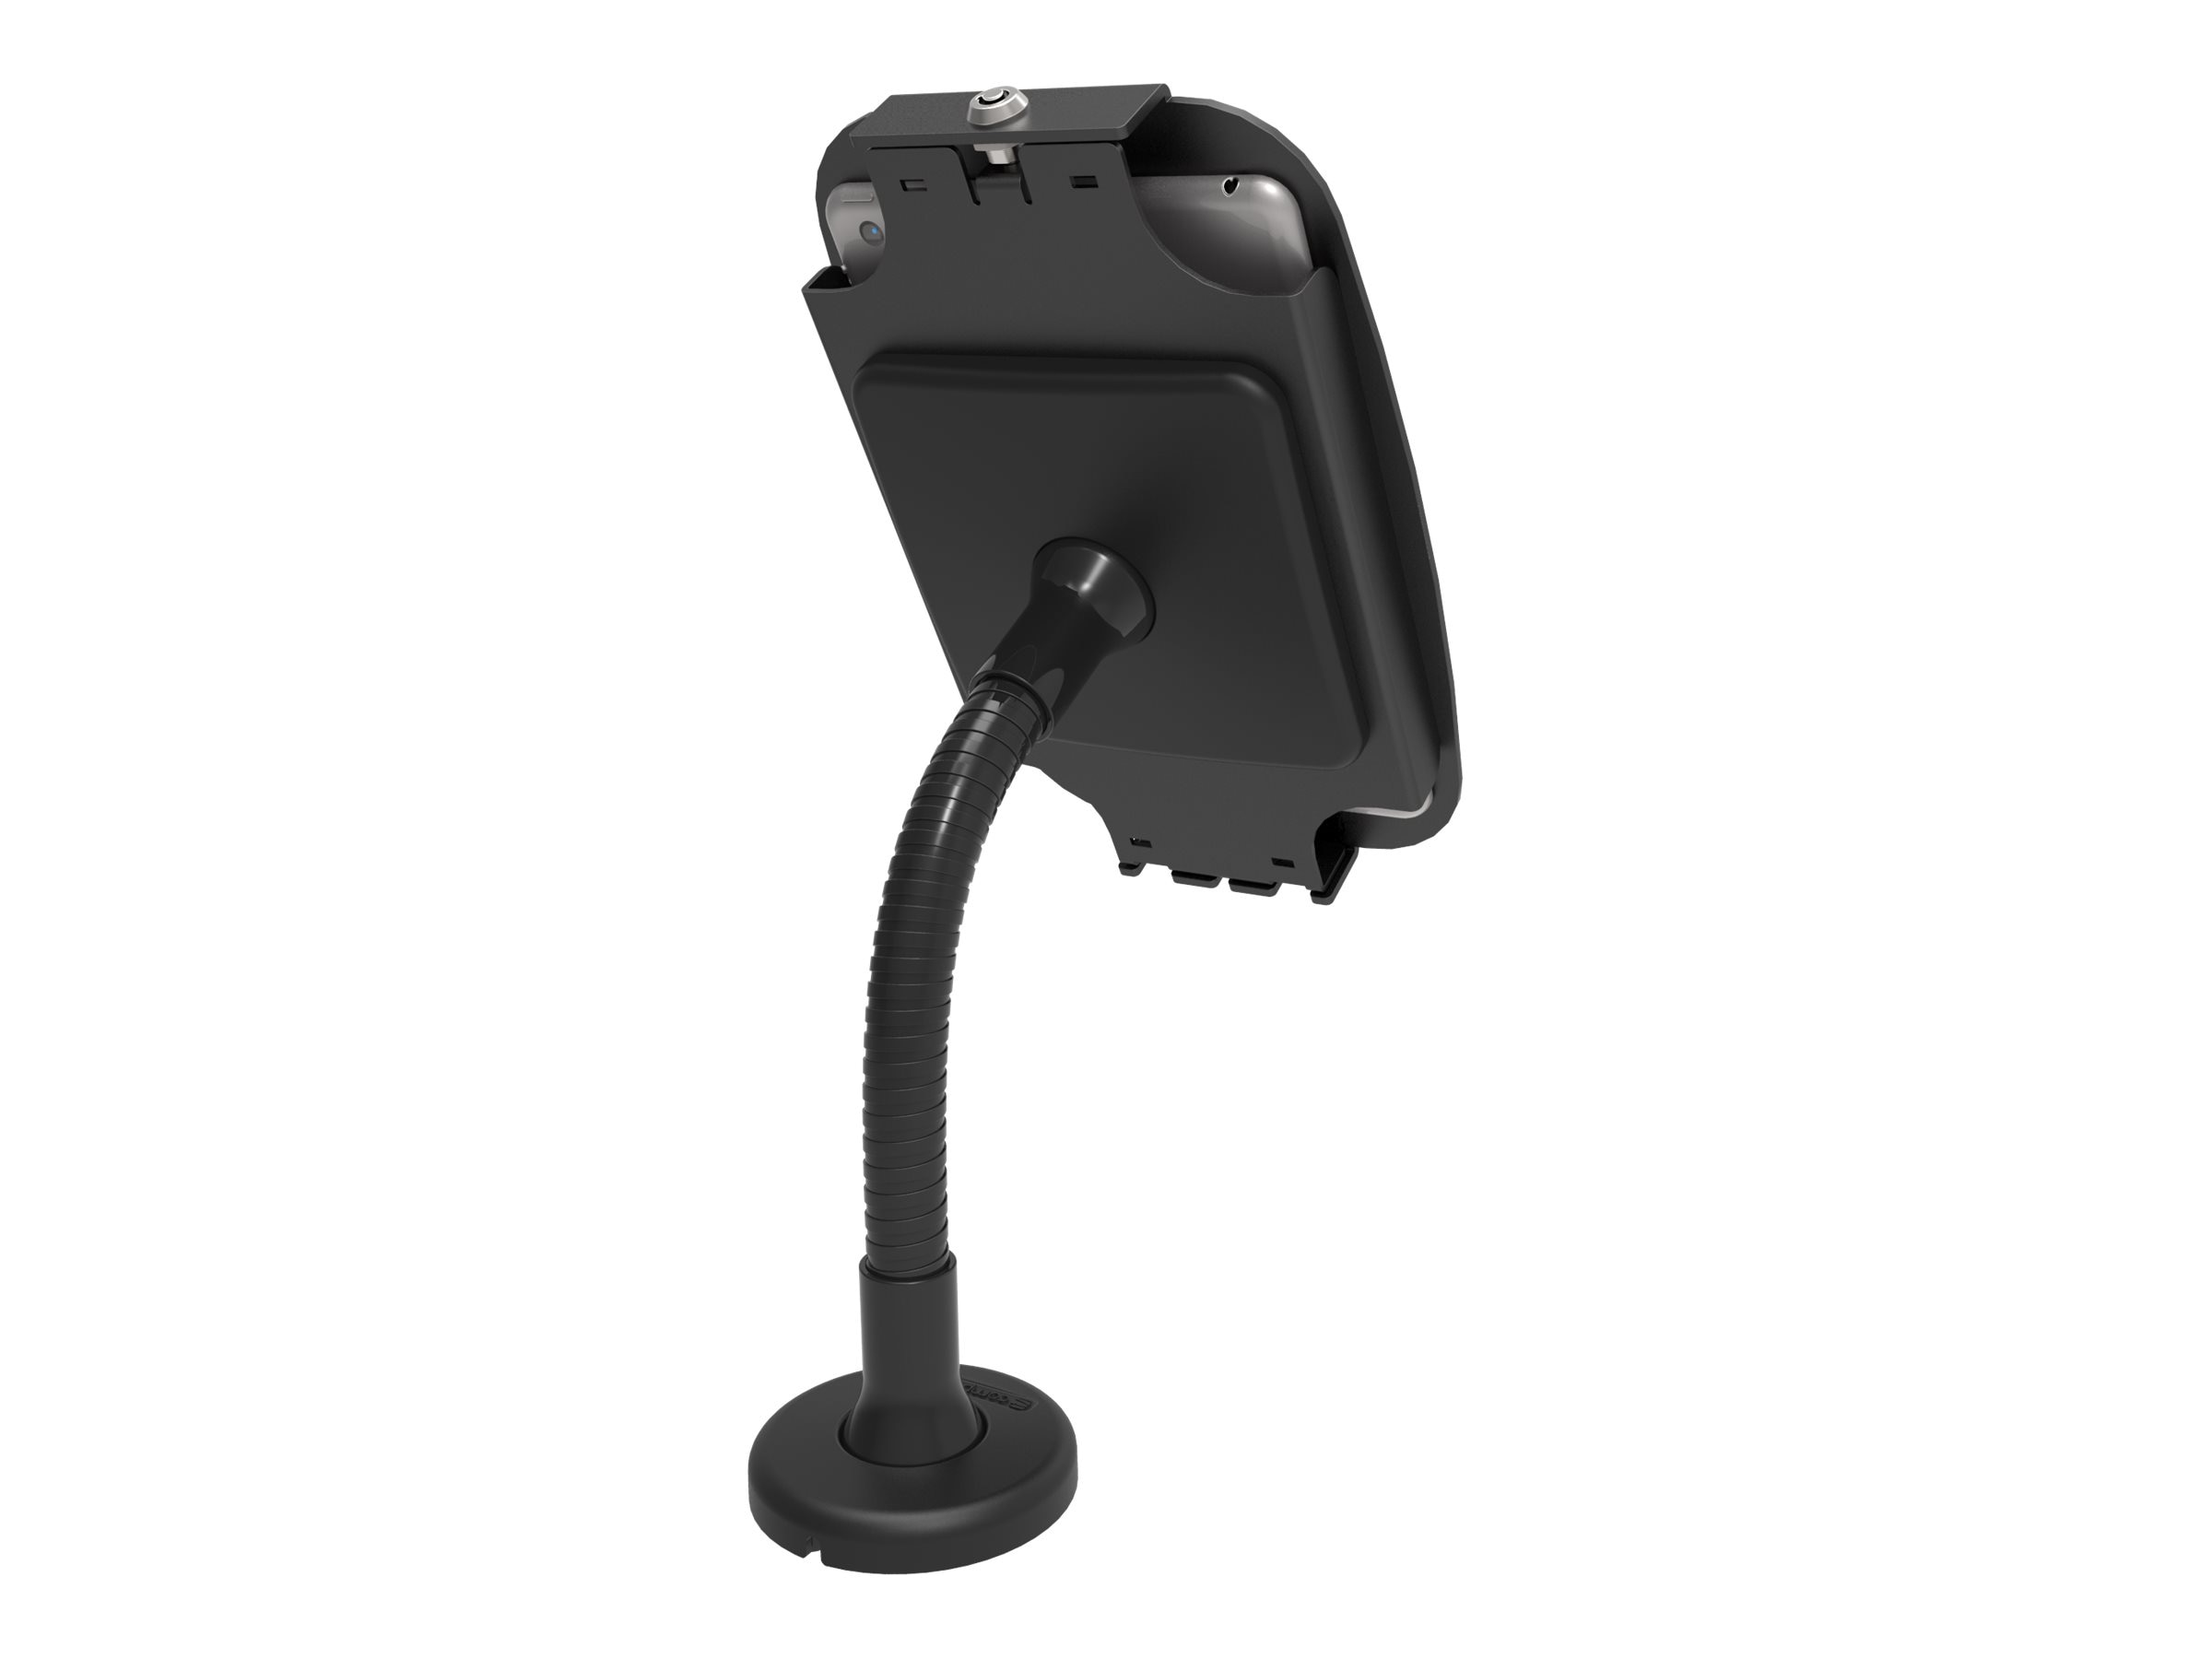 Compulocks Flex Arm Mount for Surface Pro, Black, 159B500GEB